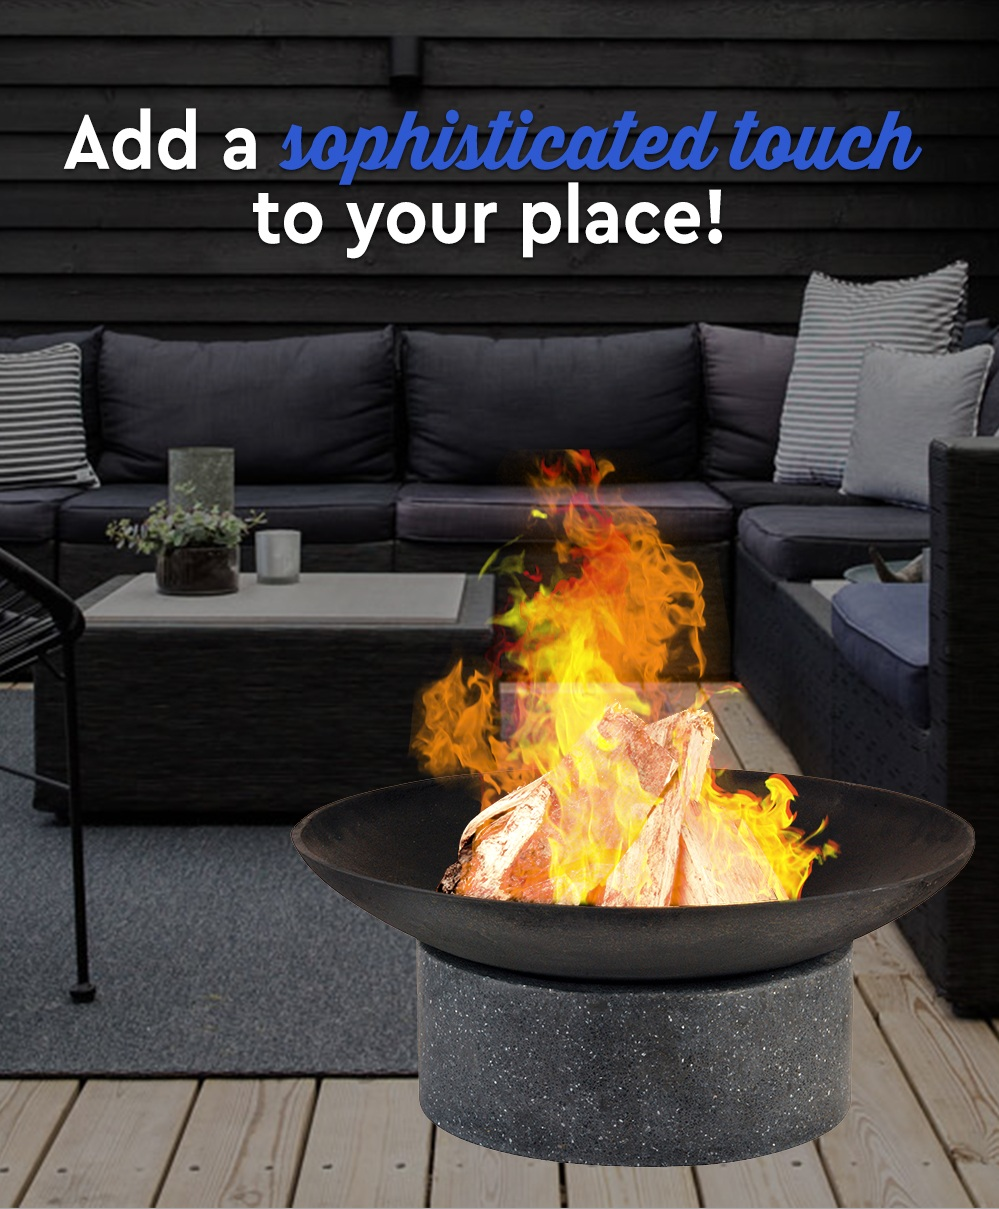 Fire-Pit-Stone-Base-w-Round-Cast-Iron-Bowl-Open-Outdoor-Fireplace-Firepit-BBQ